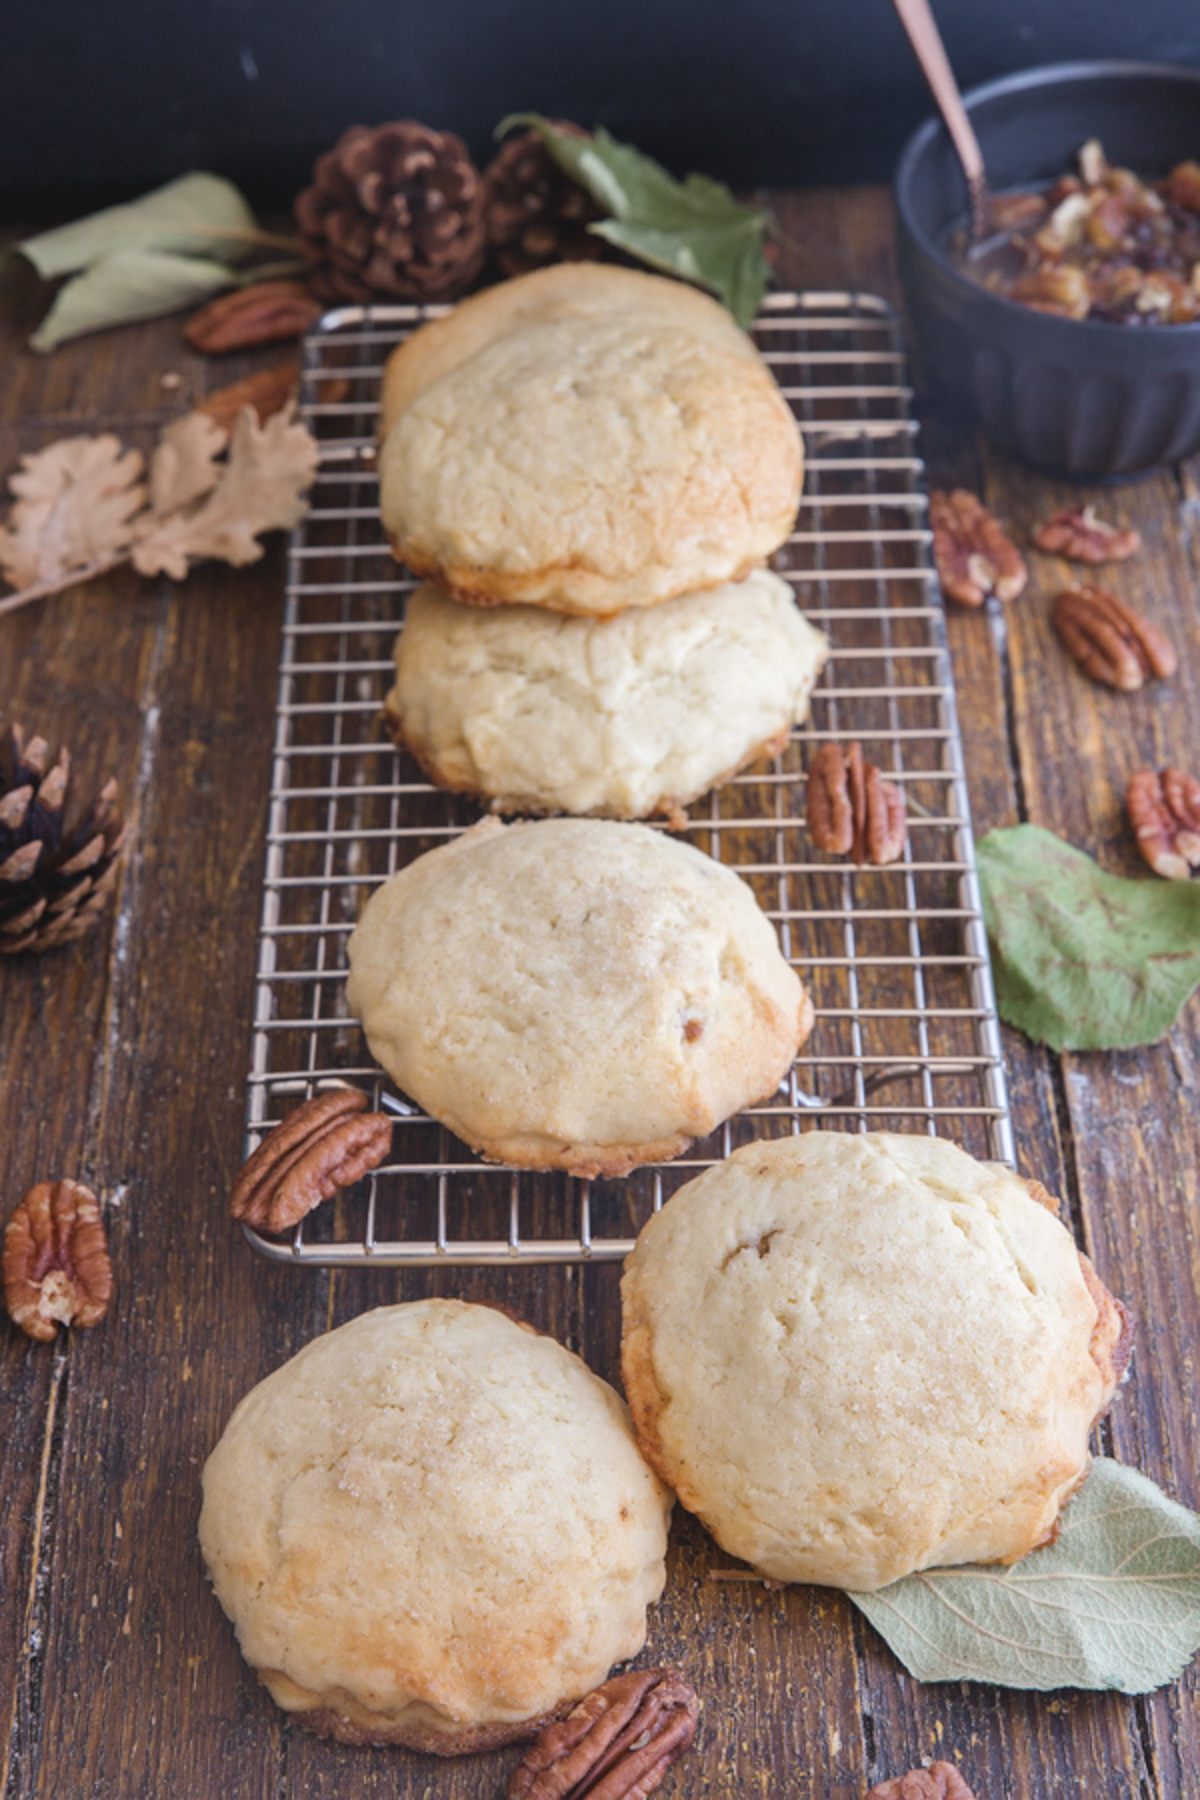 Pecan cookies on a wire rack.